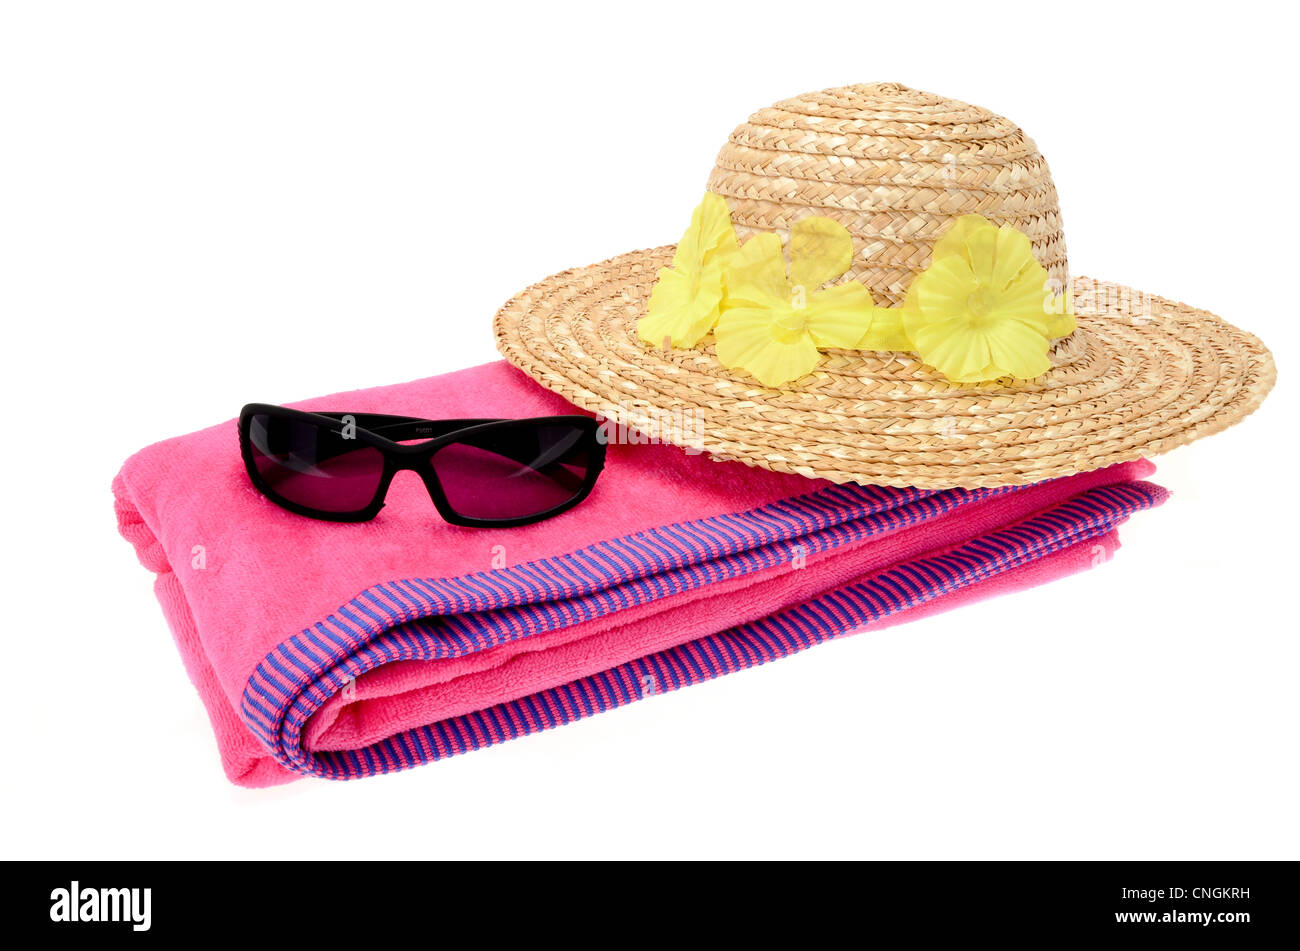 651280859fd18f Pink beach towel with a pair of sunglasses and a ladies sun hat on a white  background